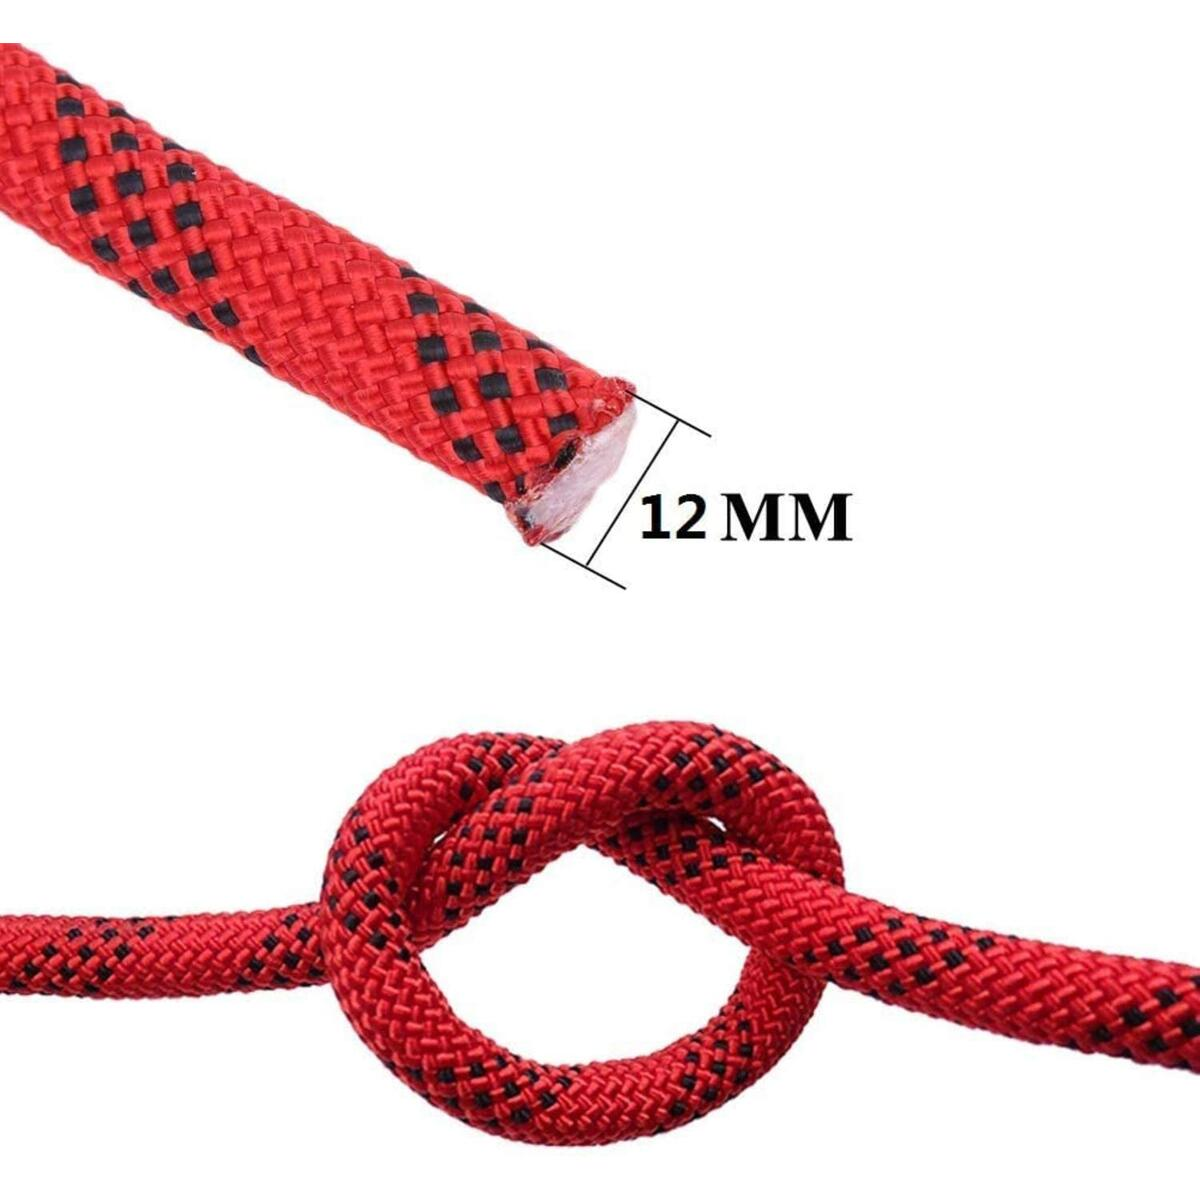 JUNCHONG Outdoor Climbing Rope,12mm Static Rope,10M(32ft) Static Climbing Rope,Rescue Rope Rappelling Rope Rock Climbing Ropetree Climbing Rope with Safety Working Gloves.